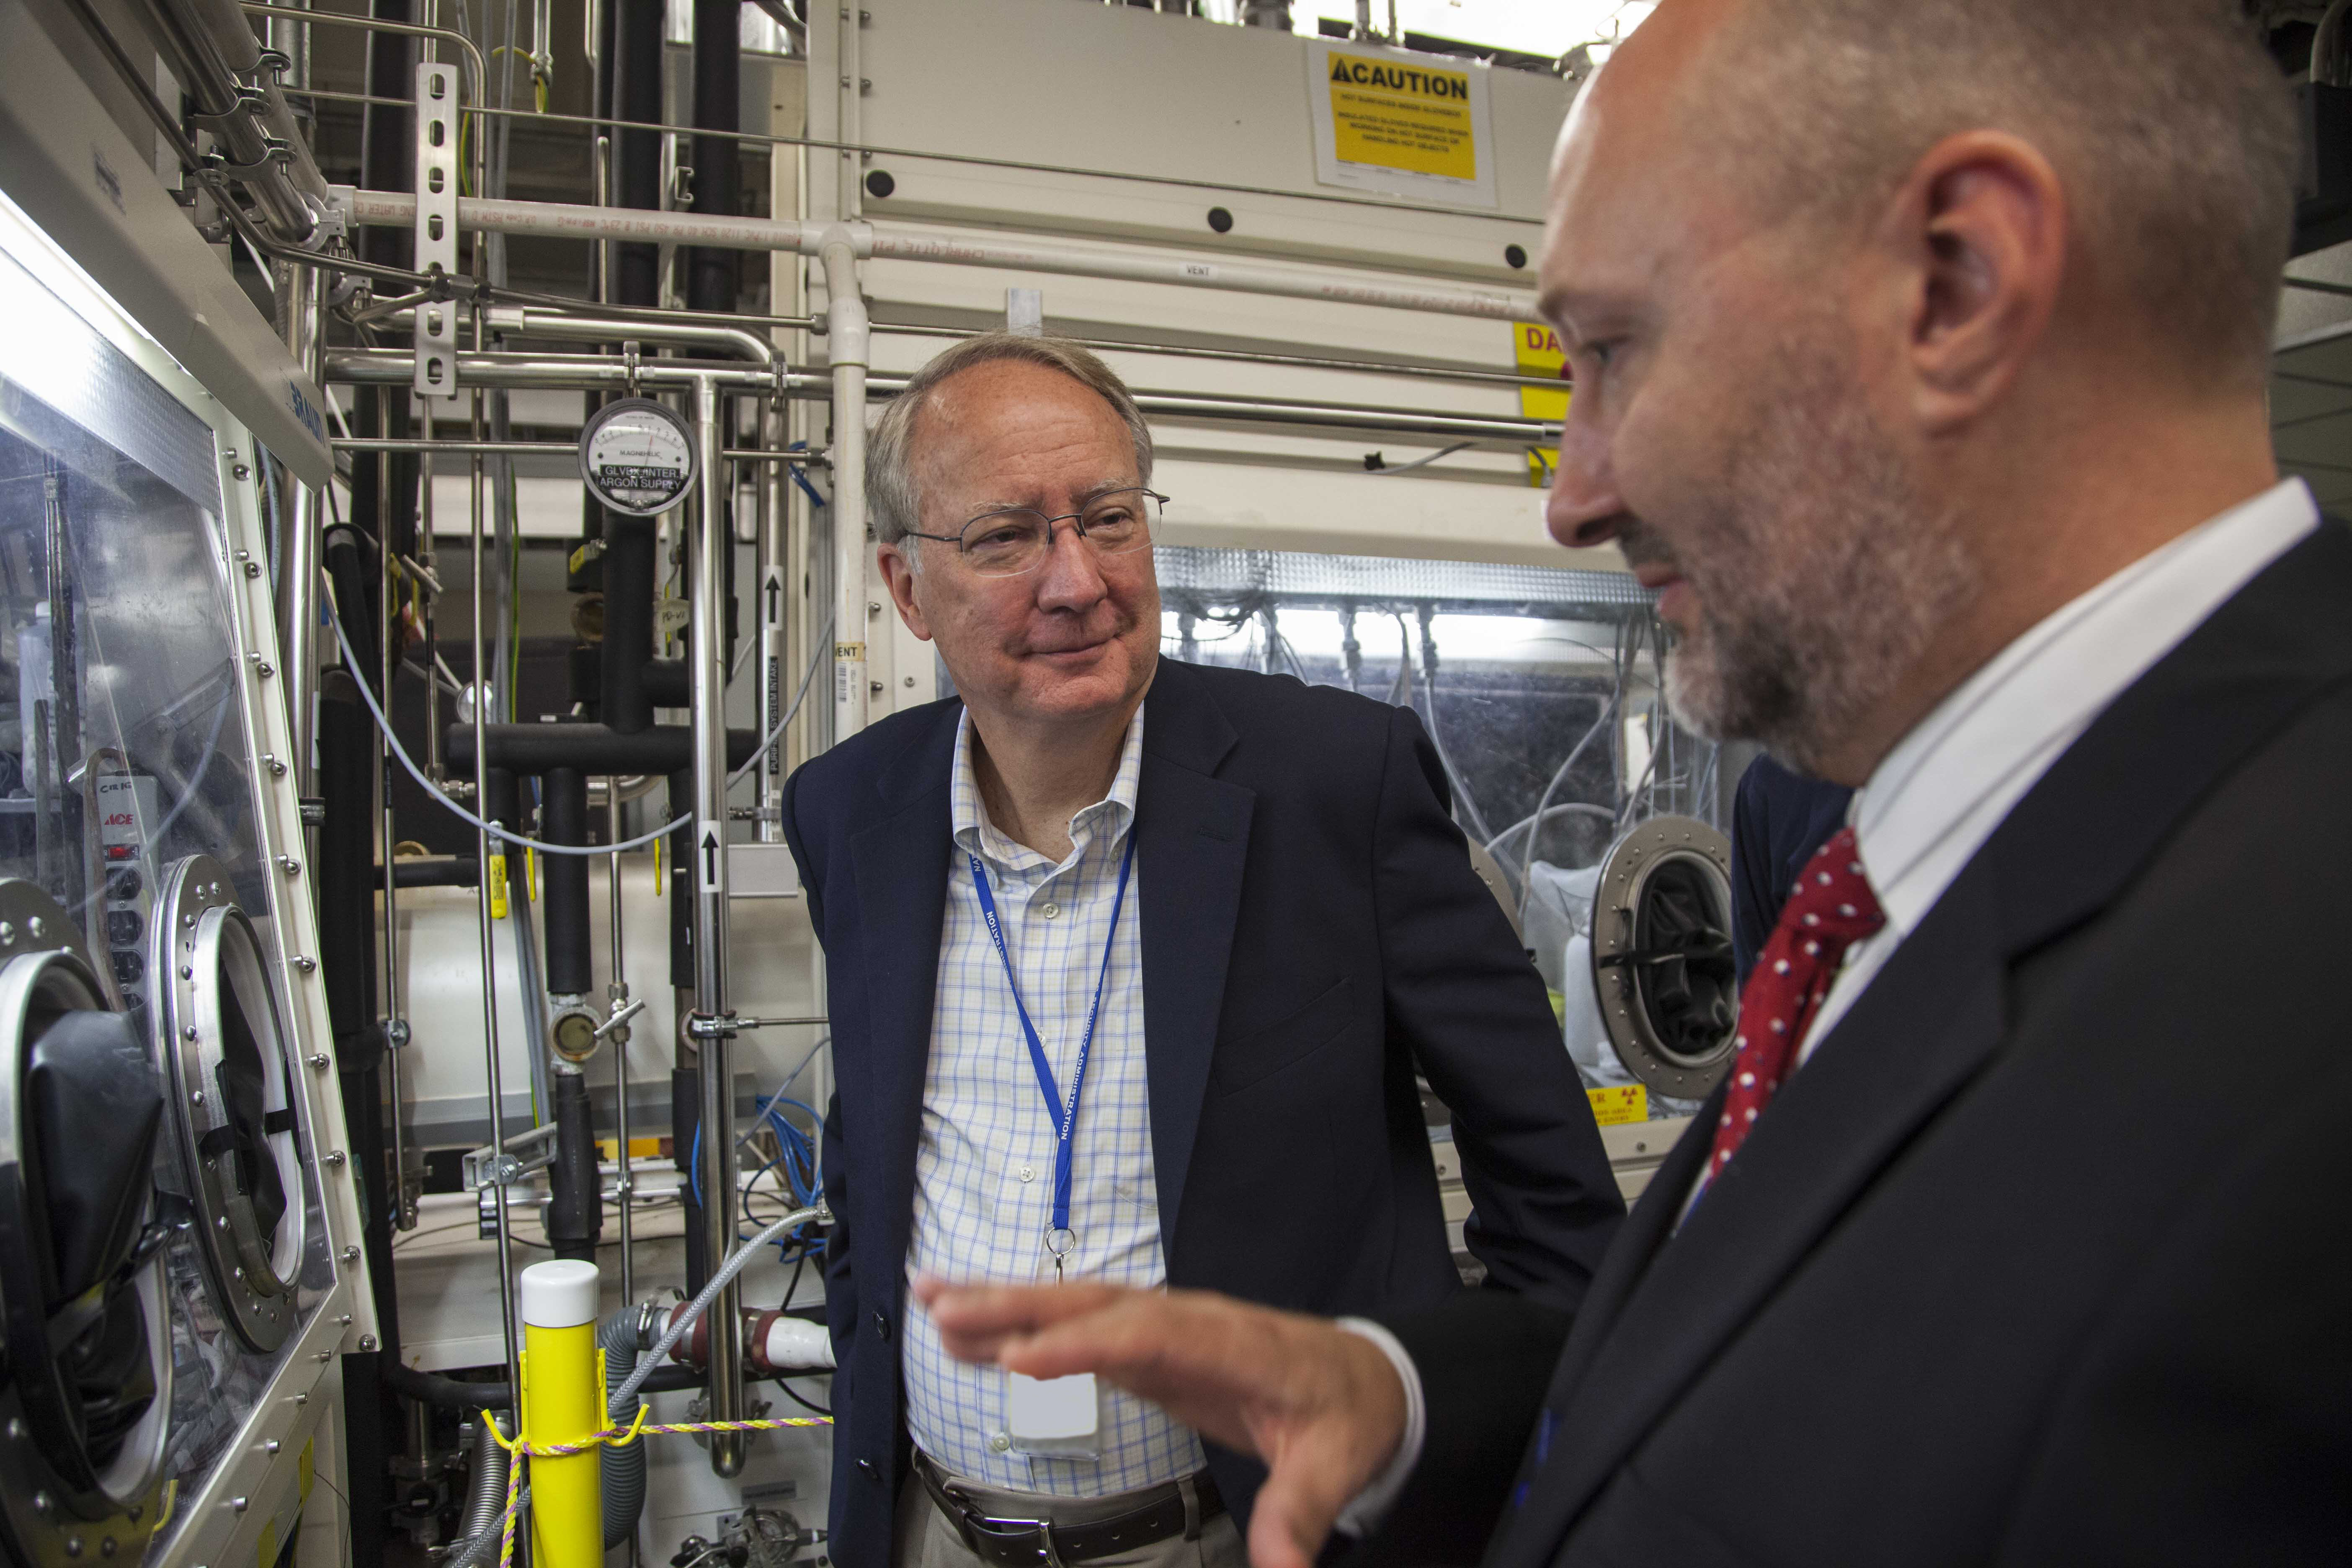 Greg Schaaff of Y-12's Development organization, right, discusses the site's uranium research efforts with Administrator Klotz. With more than 70 years of handling and securing the material in its many forms, Y-12 is the nuclear security enterprise's leader in all things uranium.